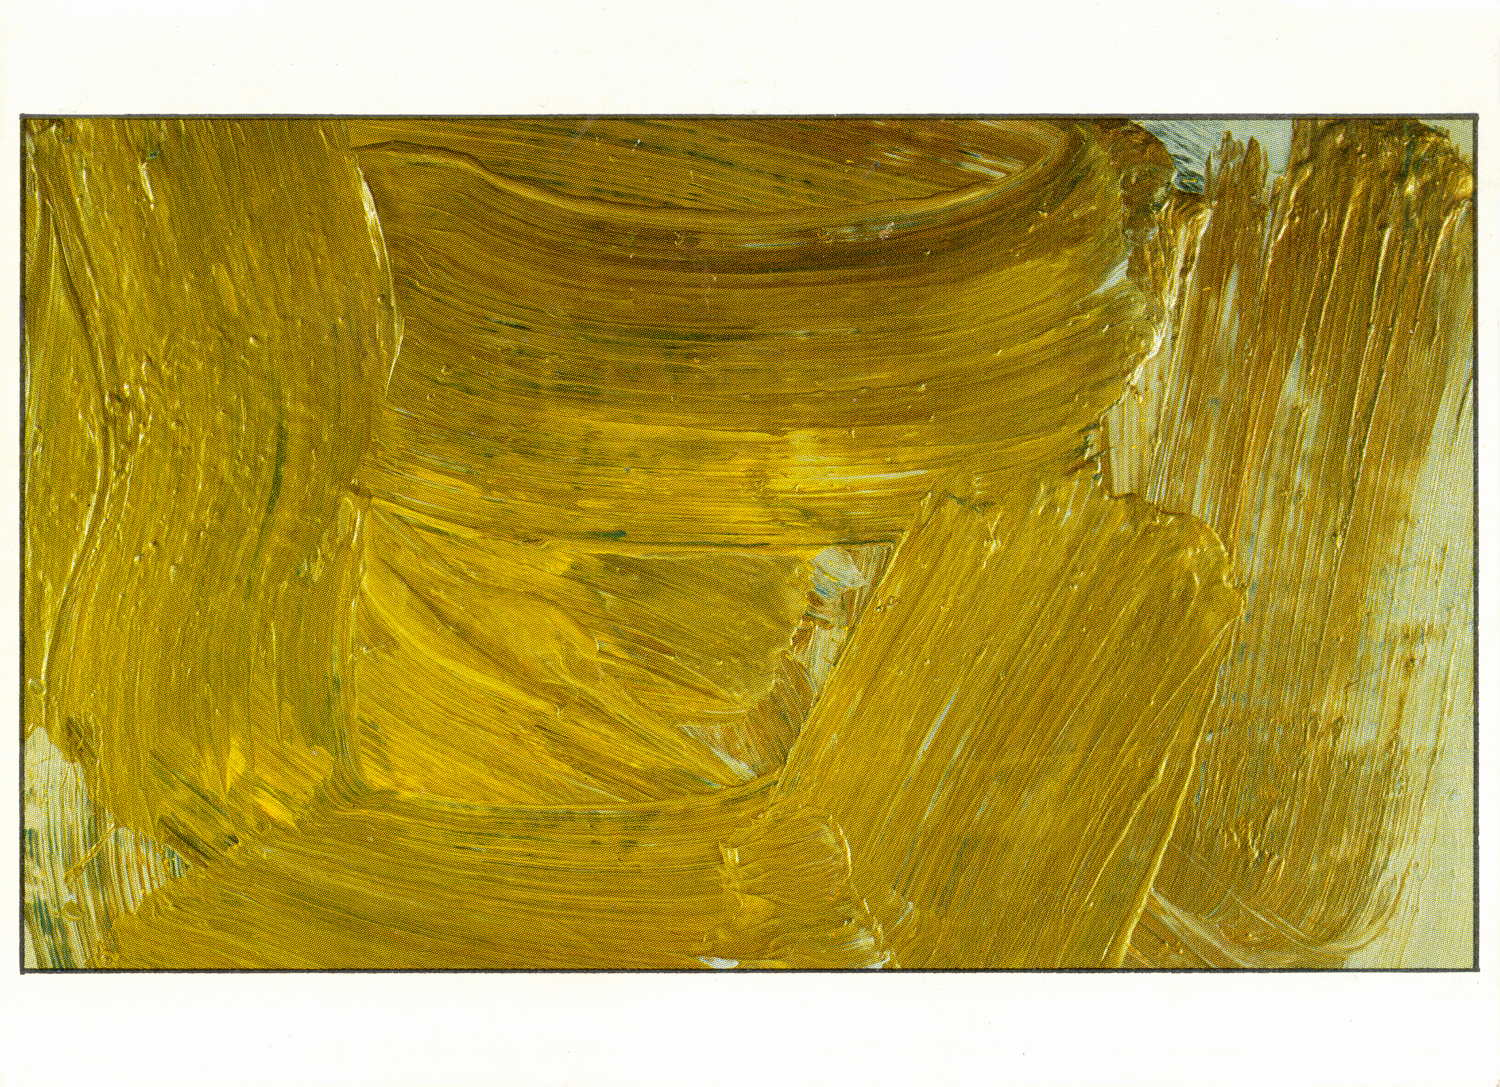 1992 John Griefen painting